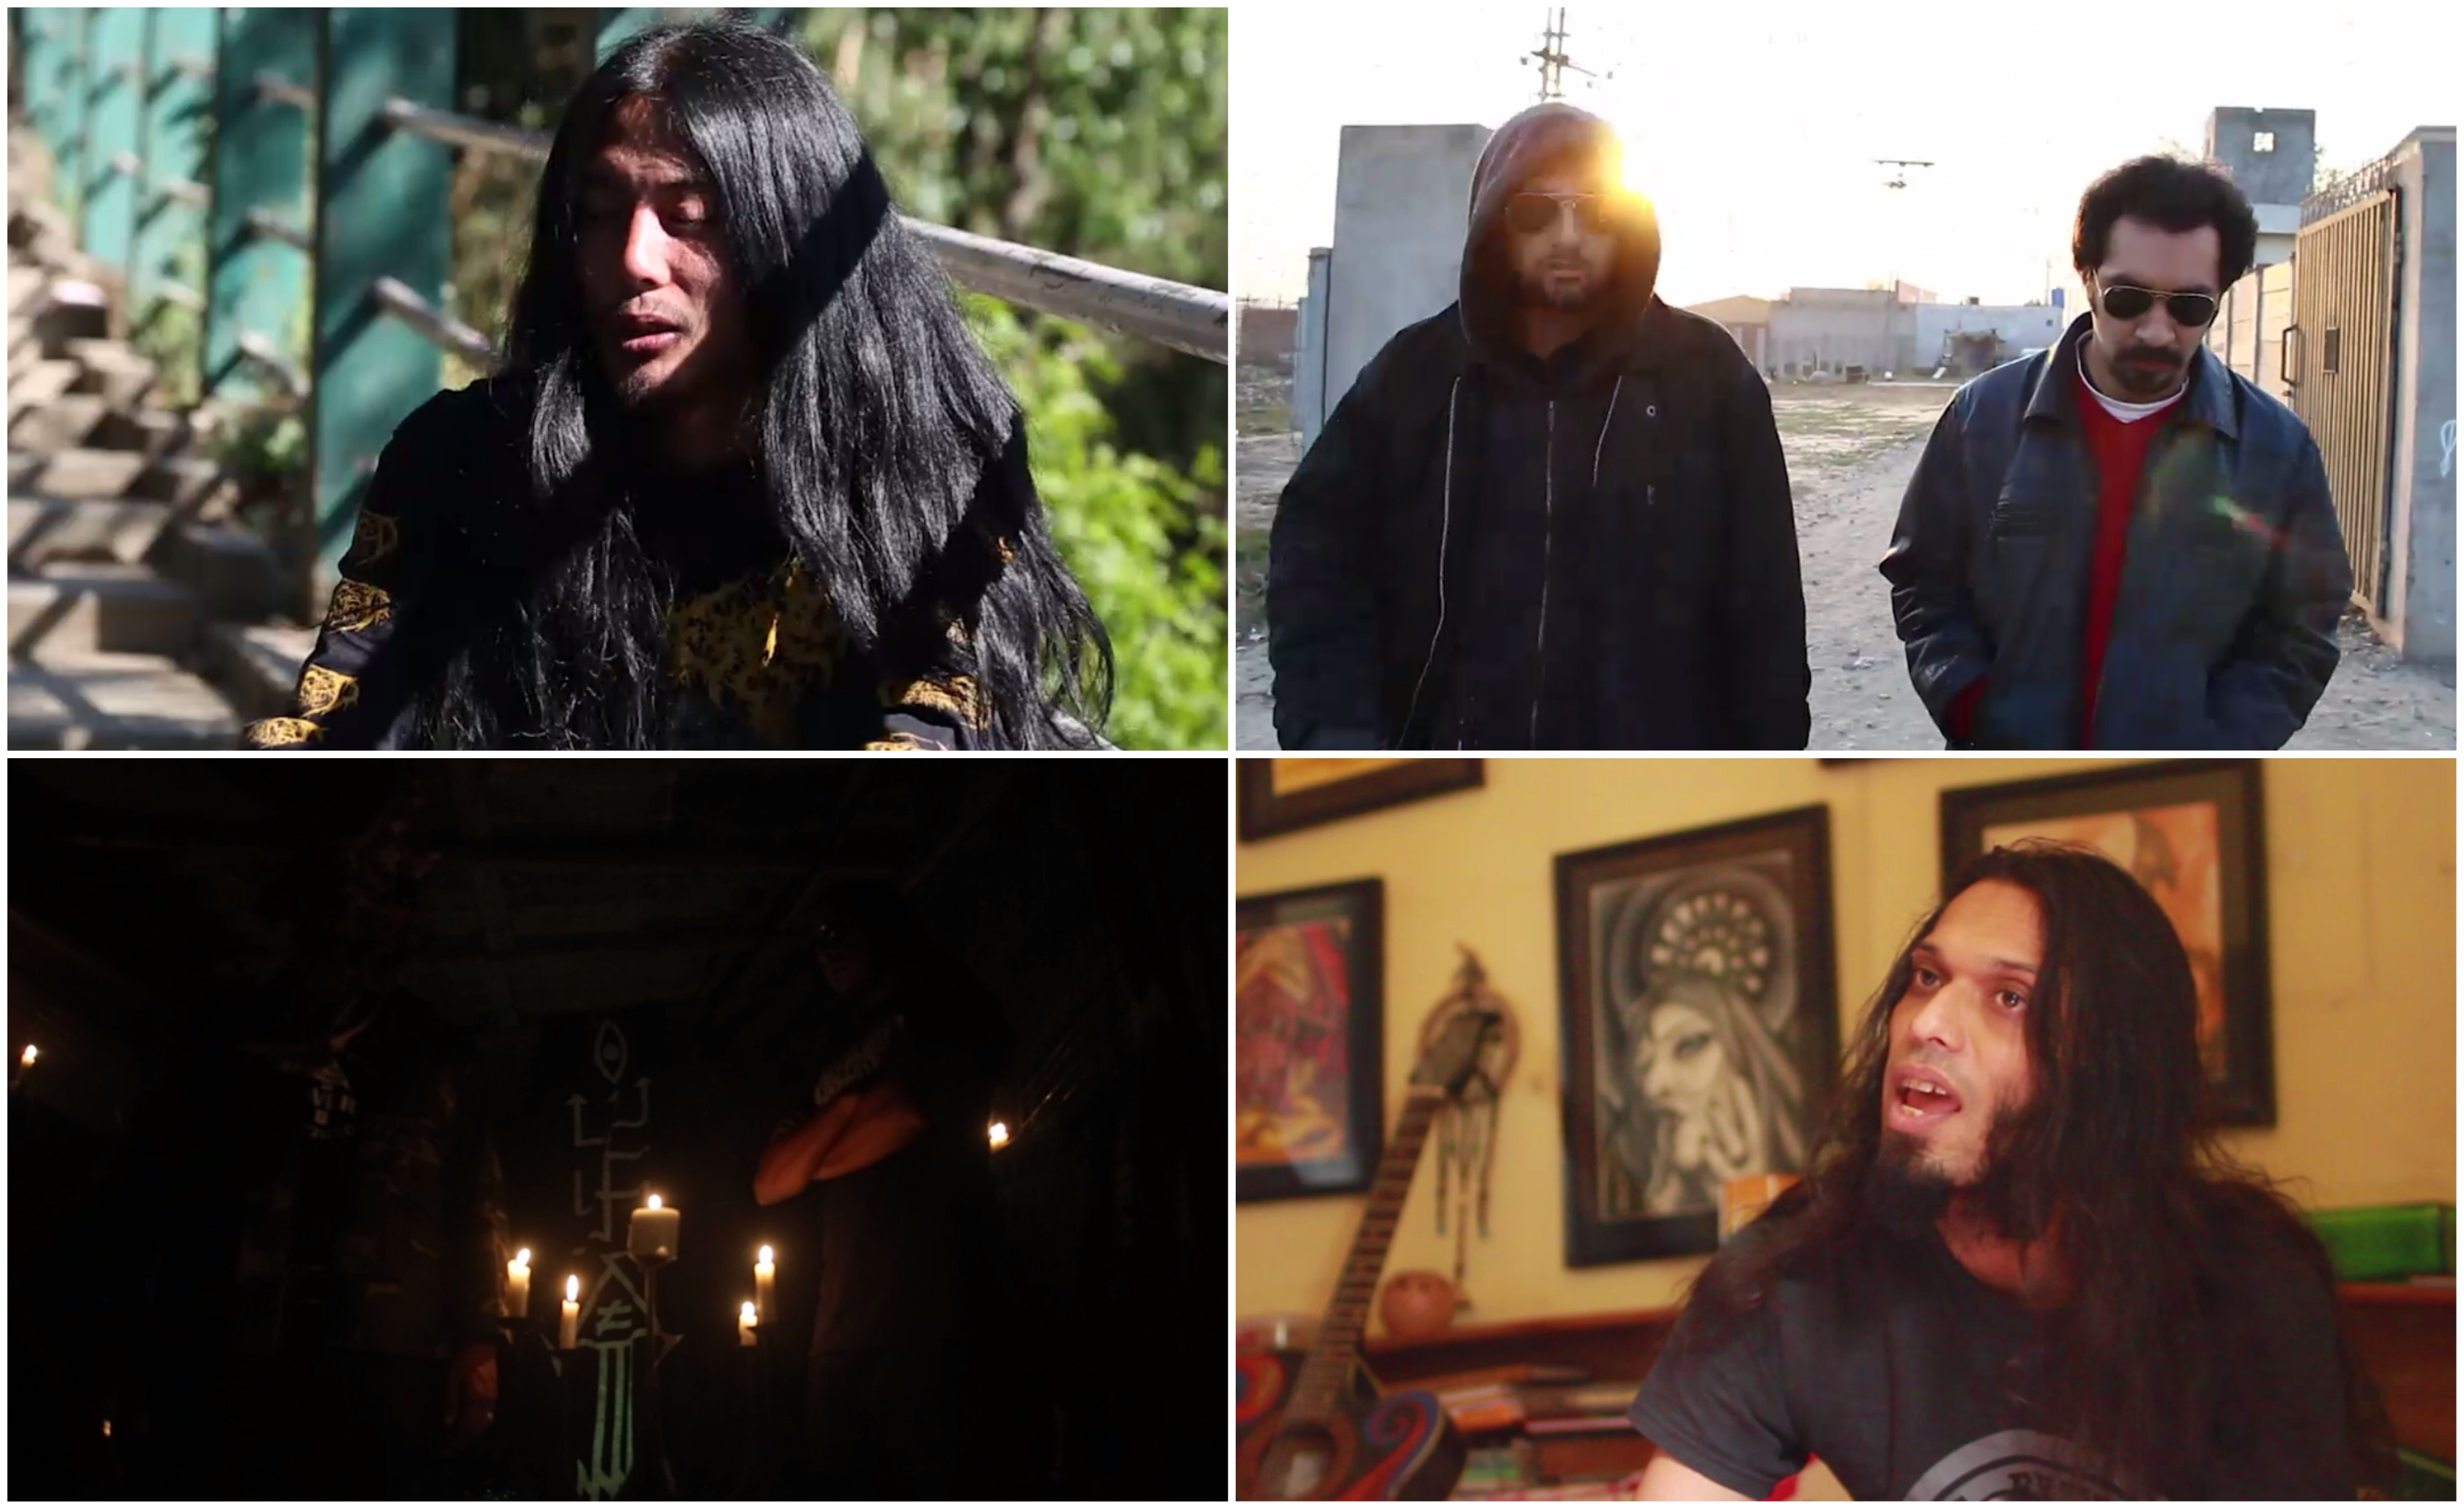 Stills from 'Extreme Nation' (work-in-progress). Image credit: Royville Productions.